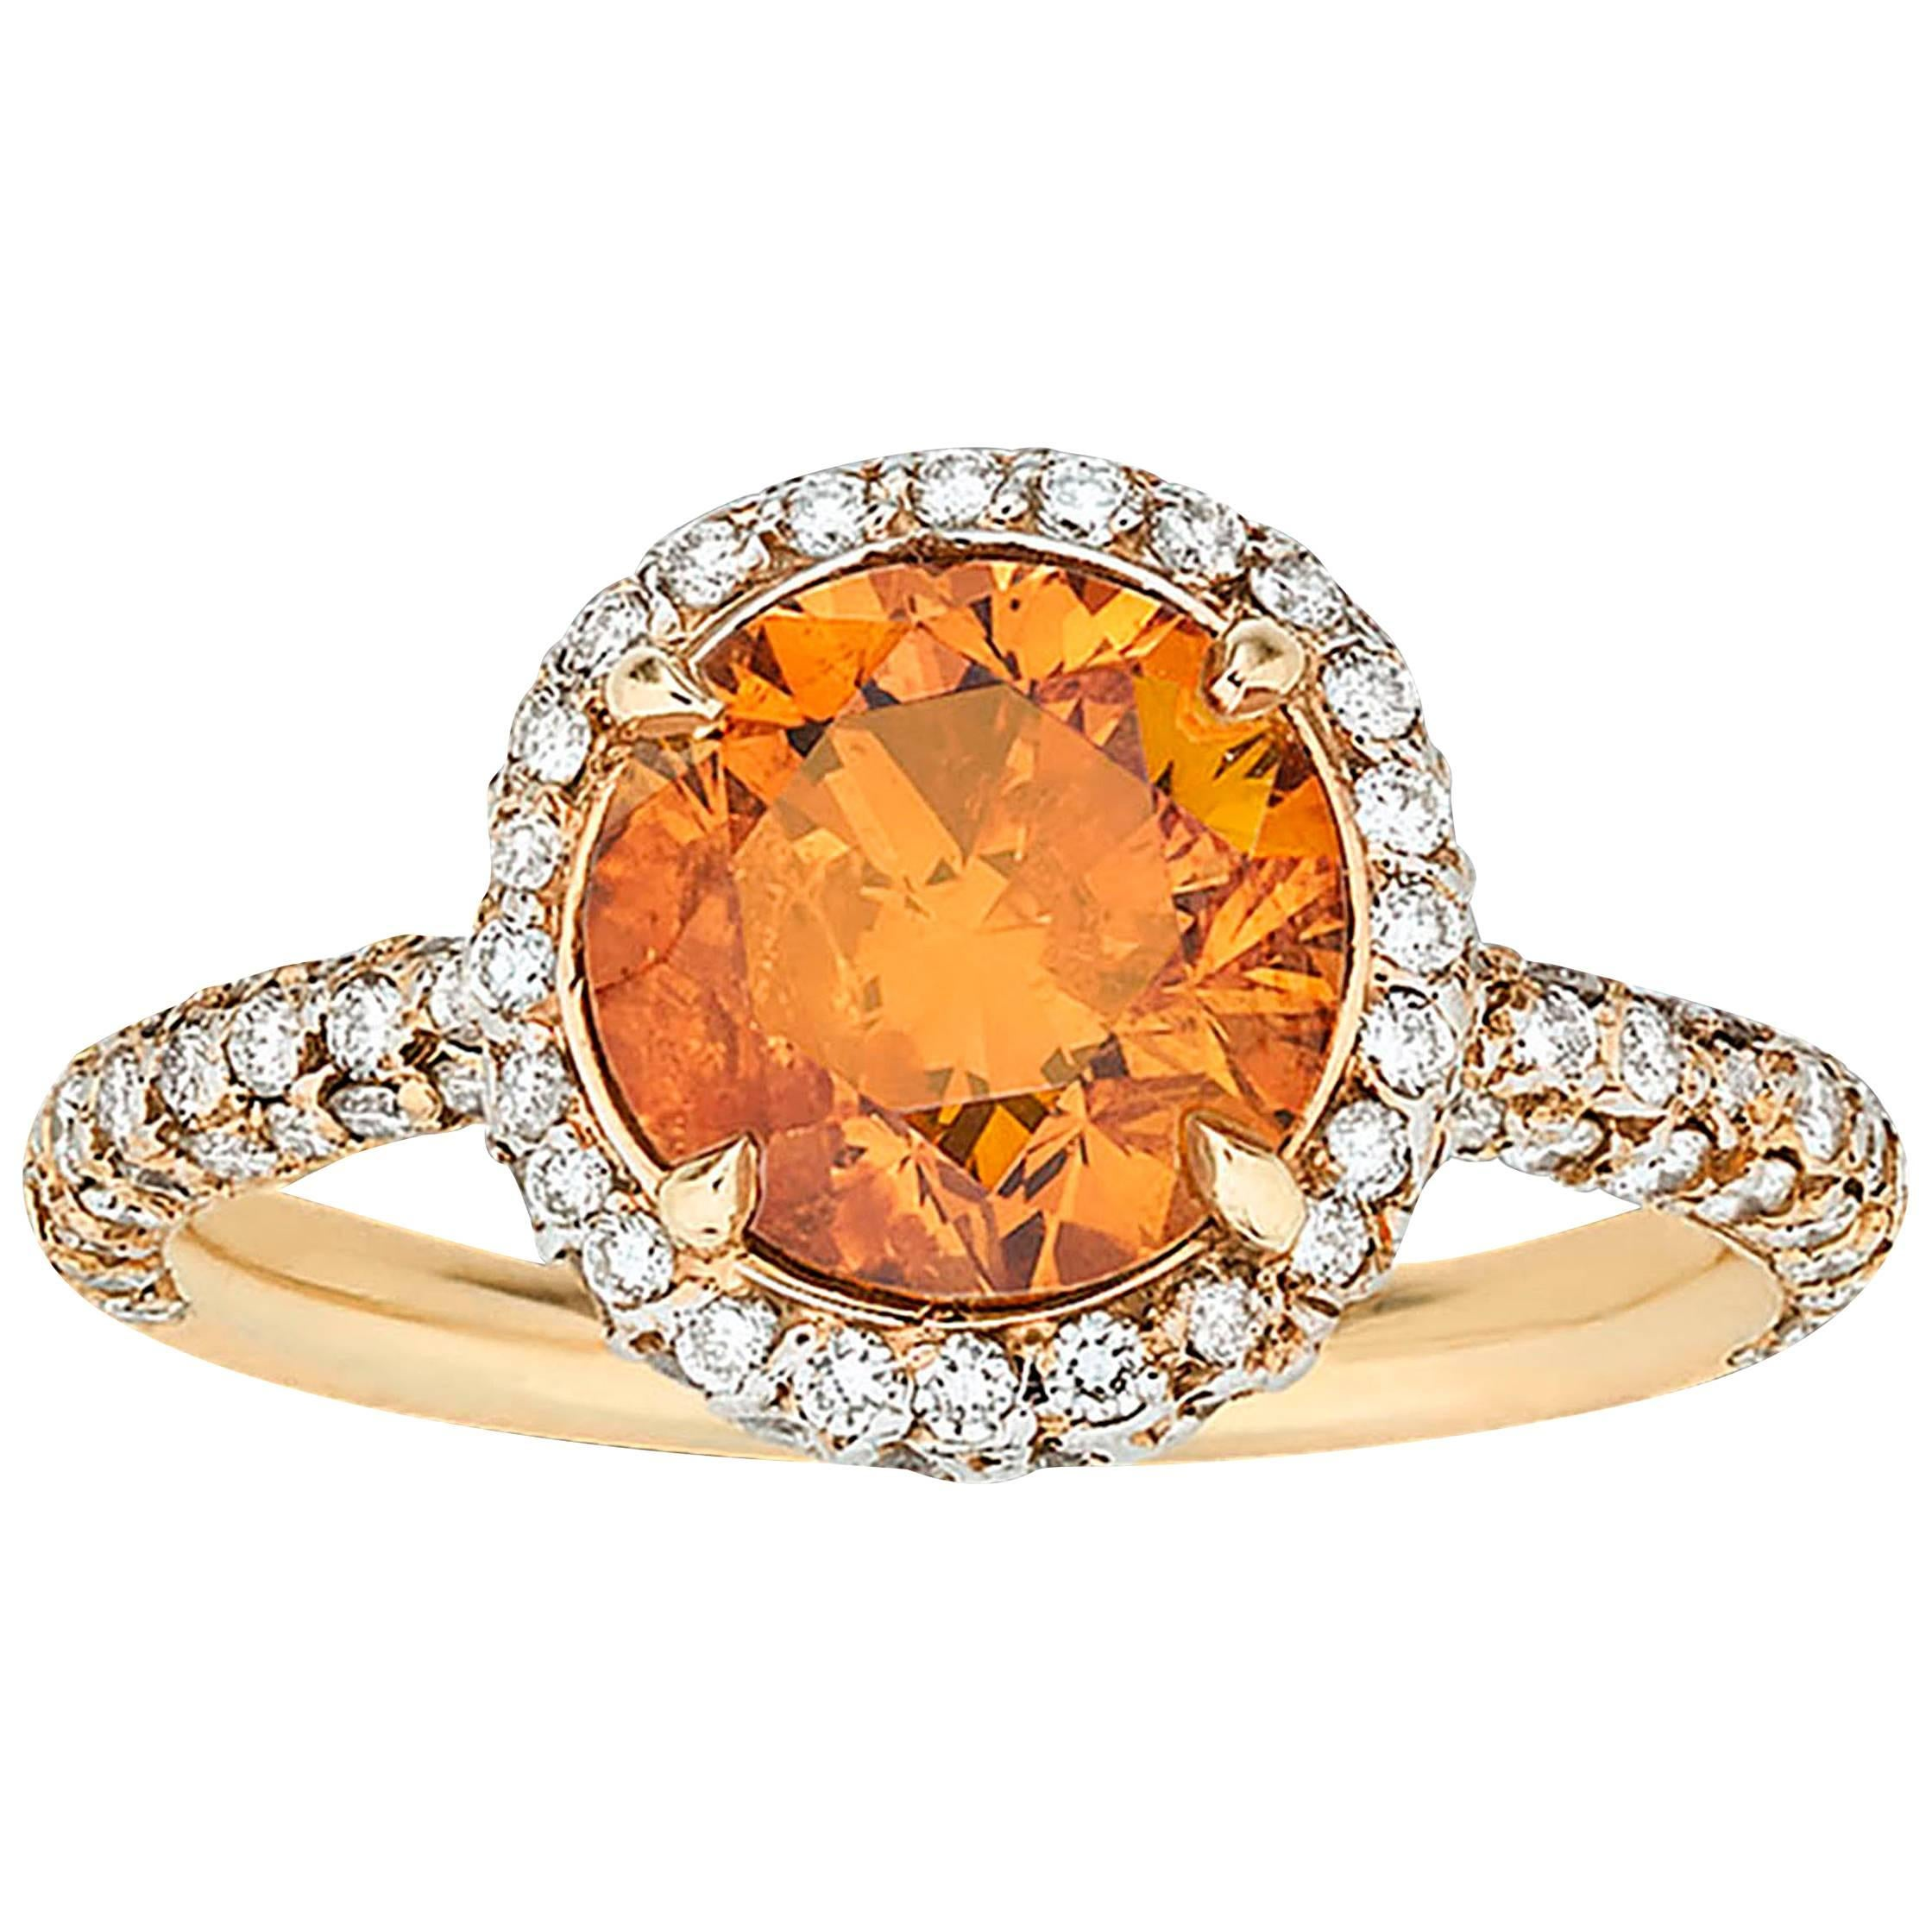 master diamond orange yellow carat at peter sale suchy for b sapphire rings j engagement jewelry platinum id ring